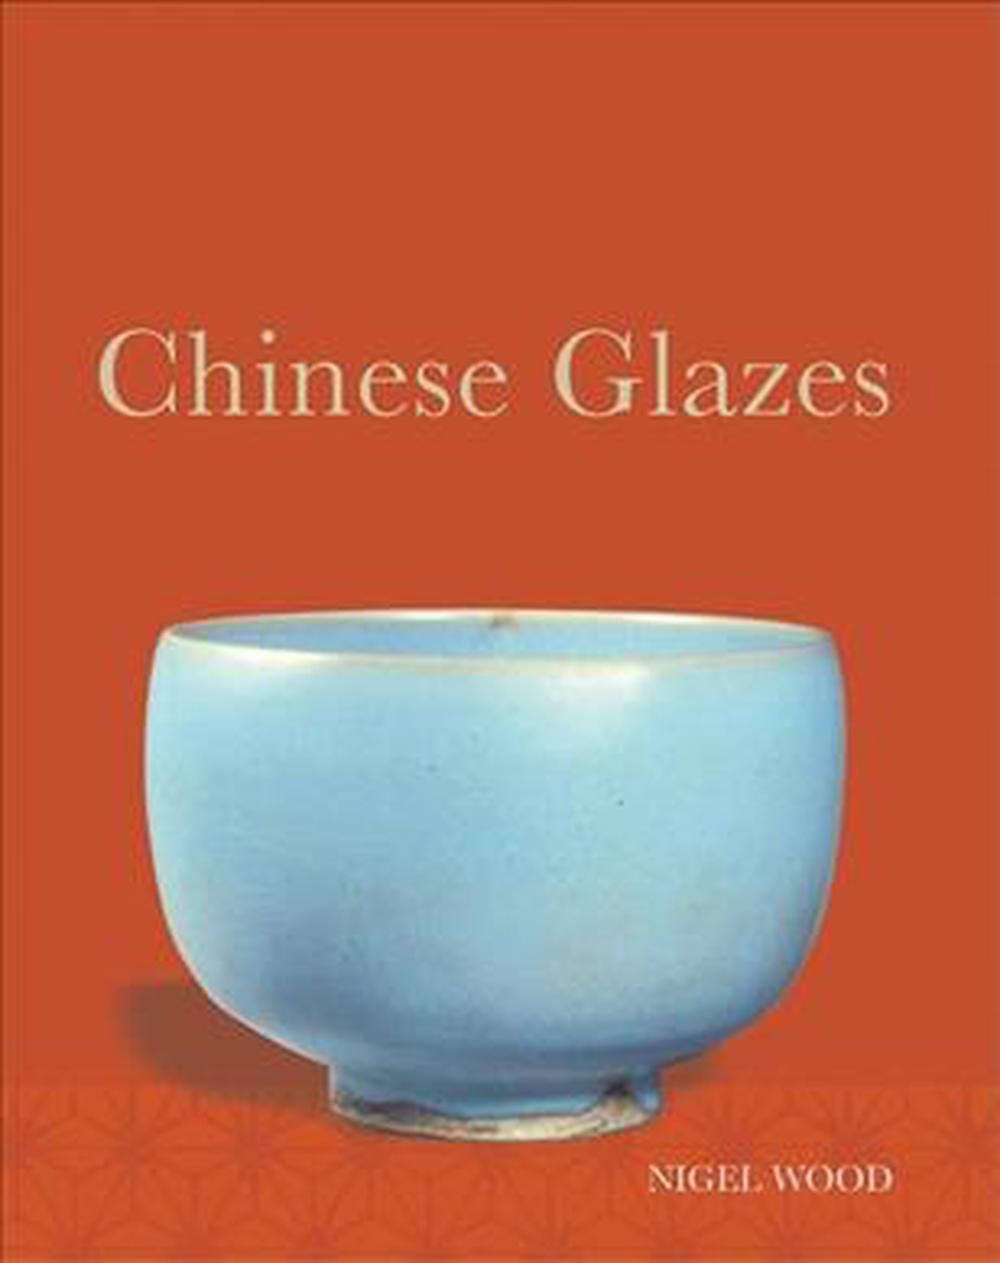 Chinese Glazes by Nigel Wood, ISBN: 9780812221435